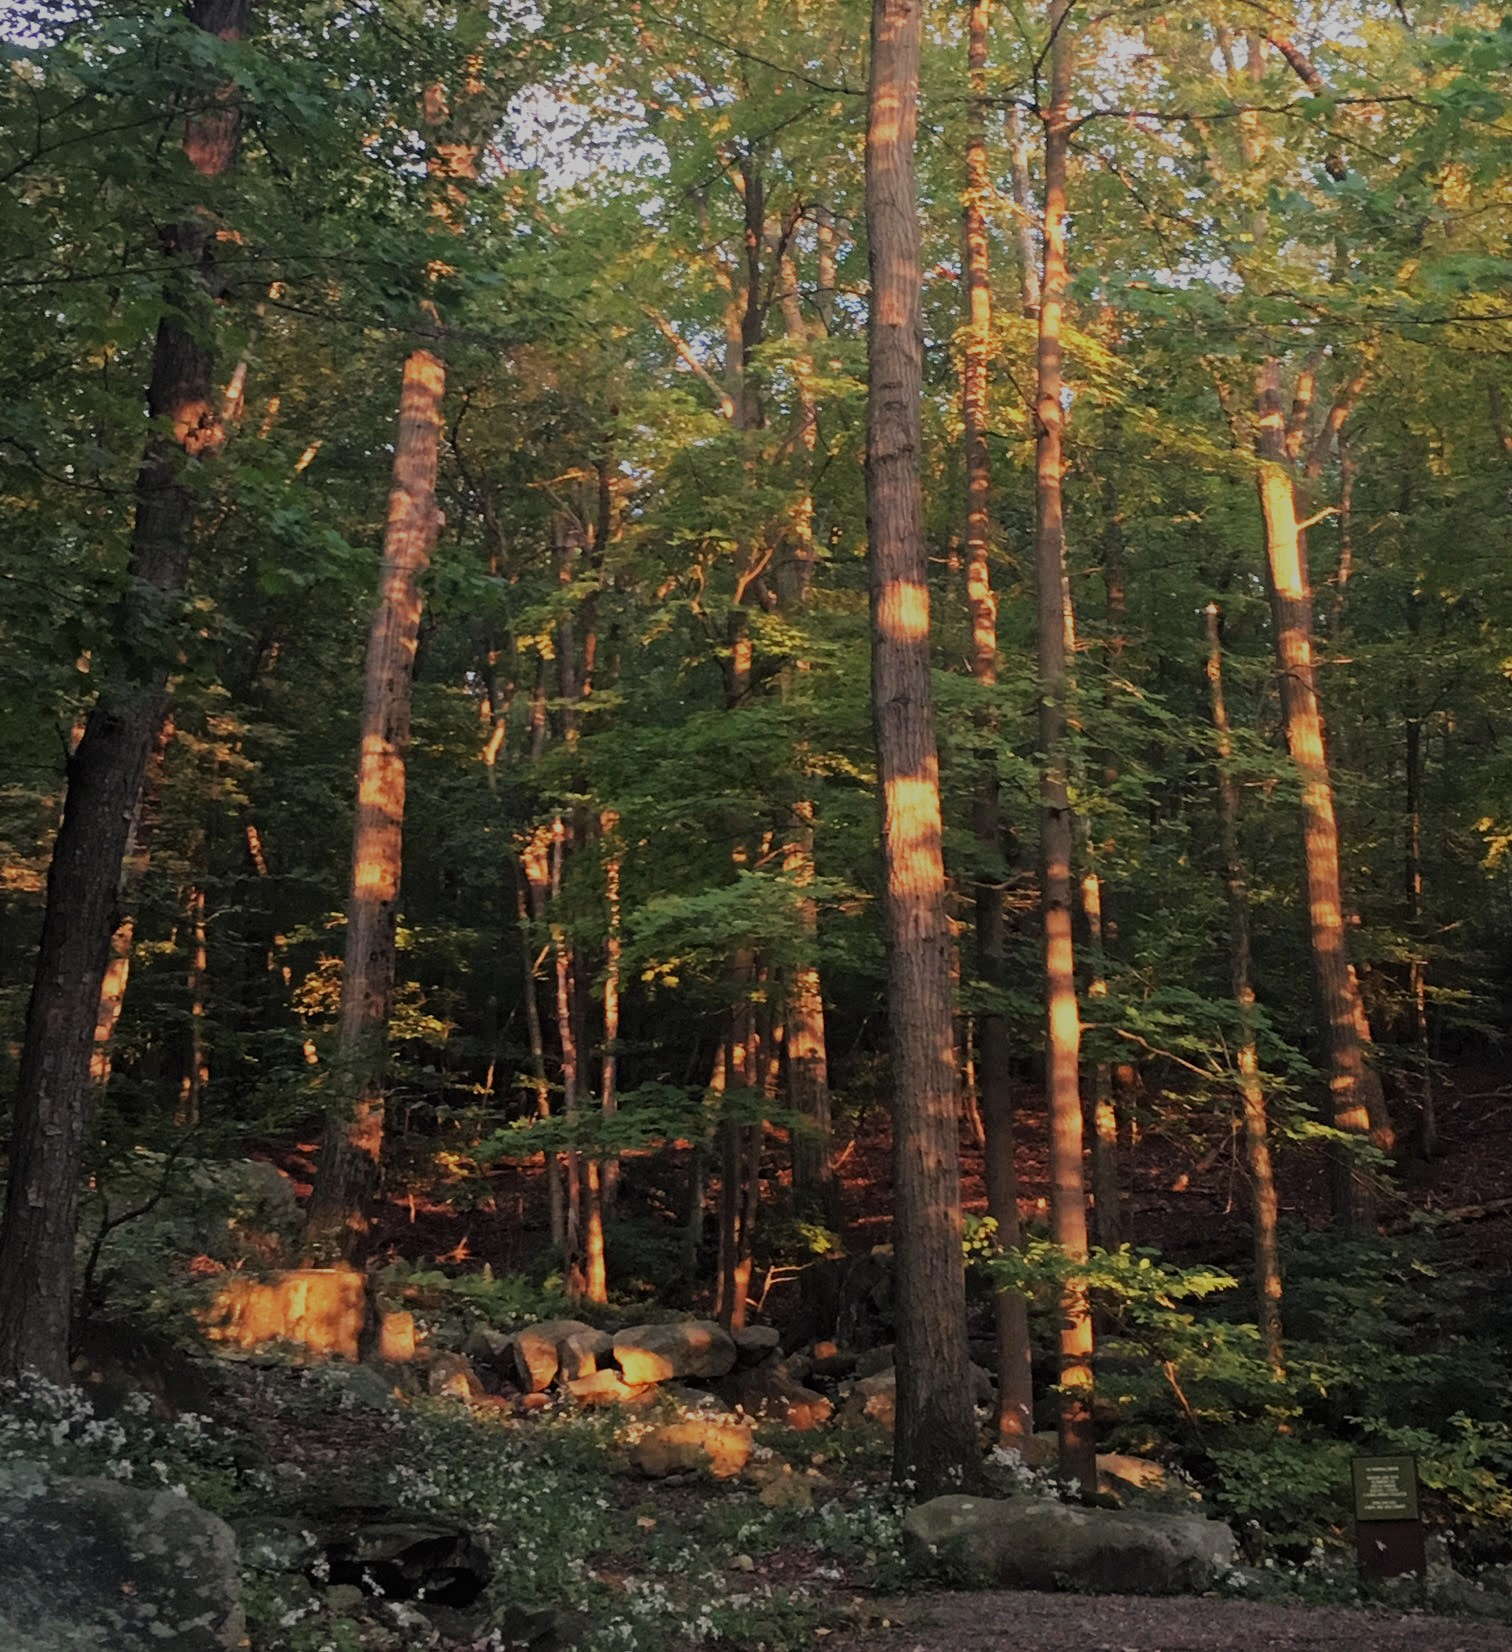 Copy of Sunset Reflected in Manitoga's Woodland Garden